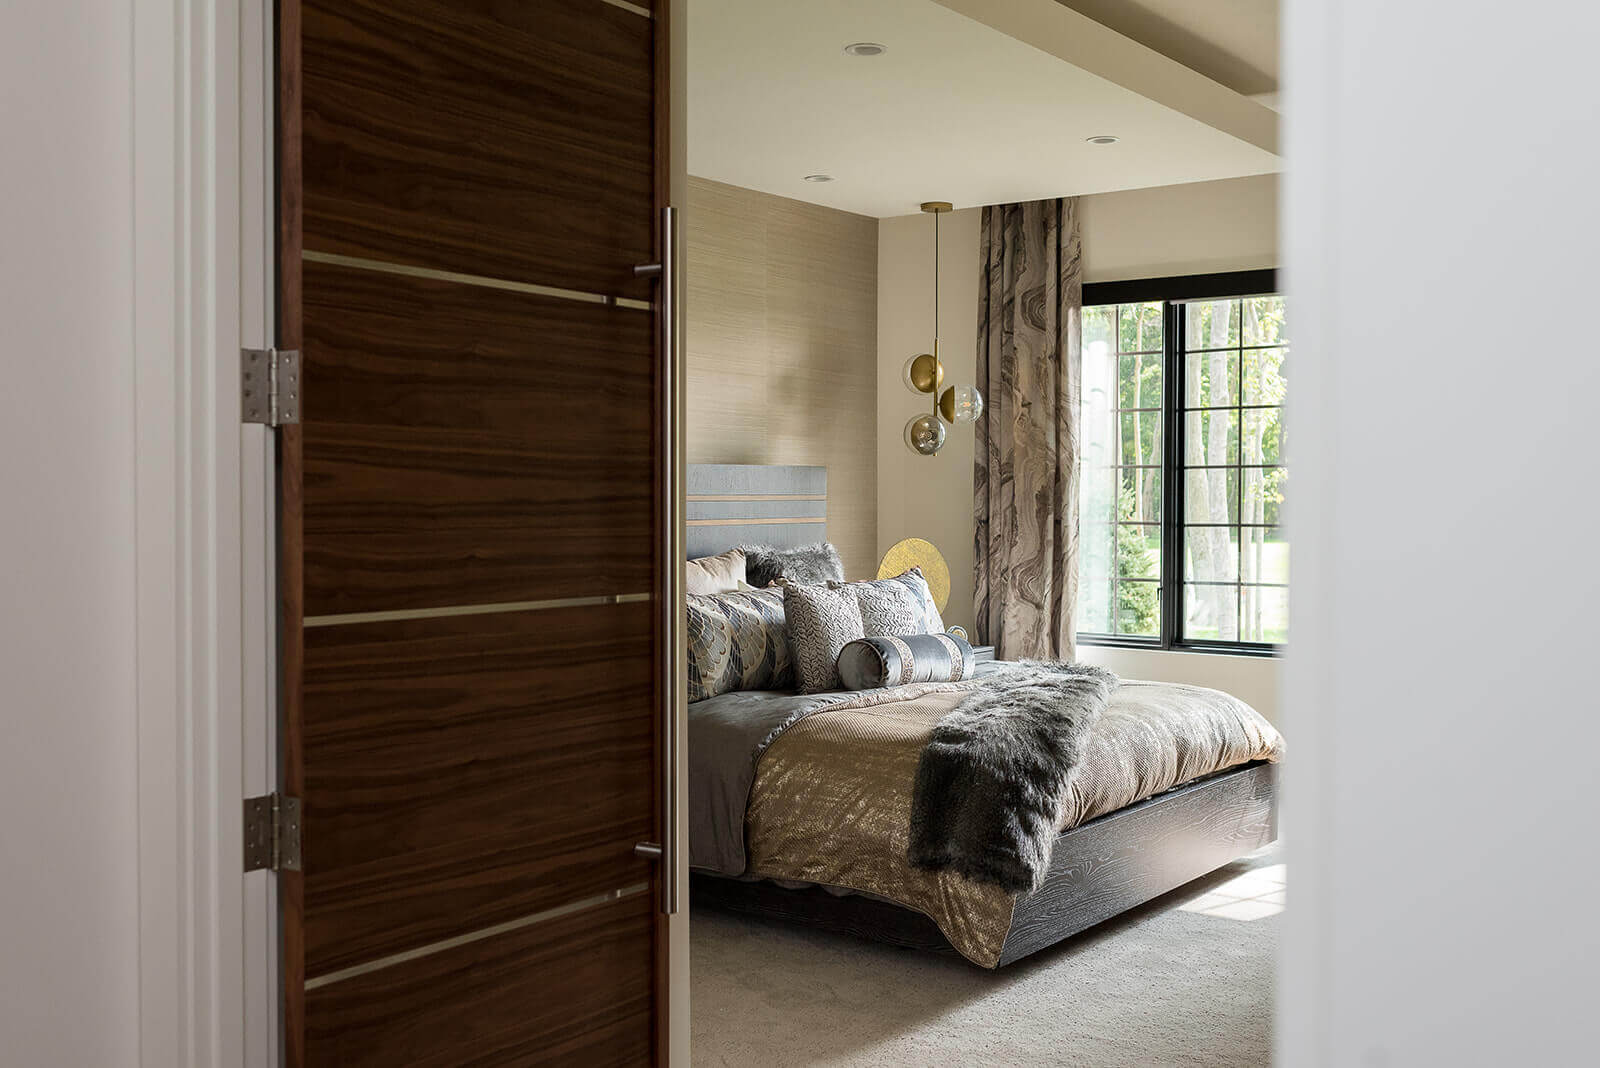 A Home-A-Rama worthy master bedroom